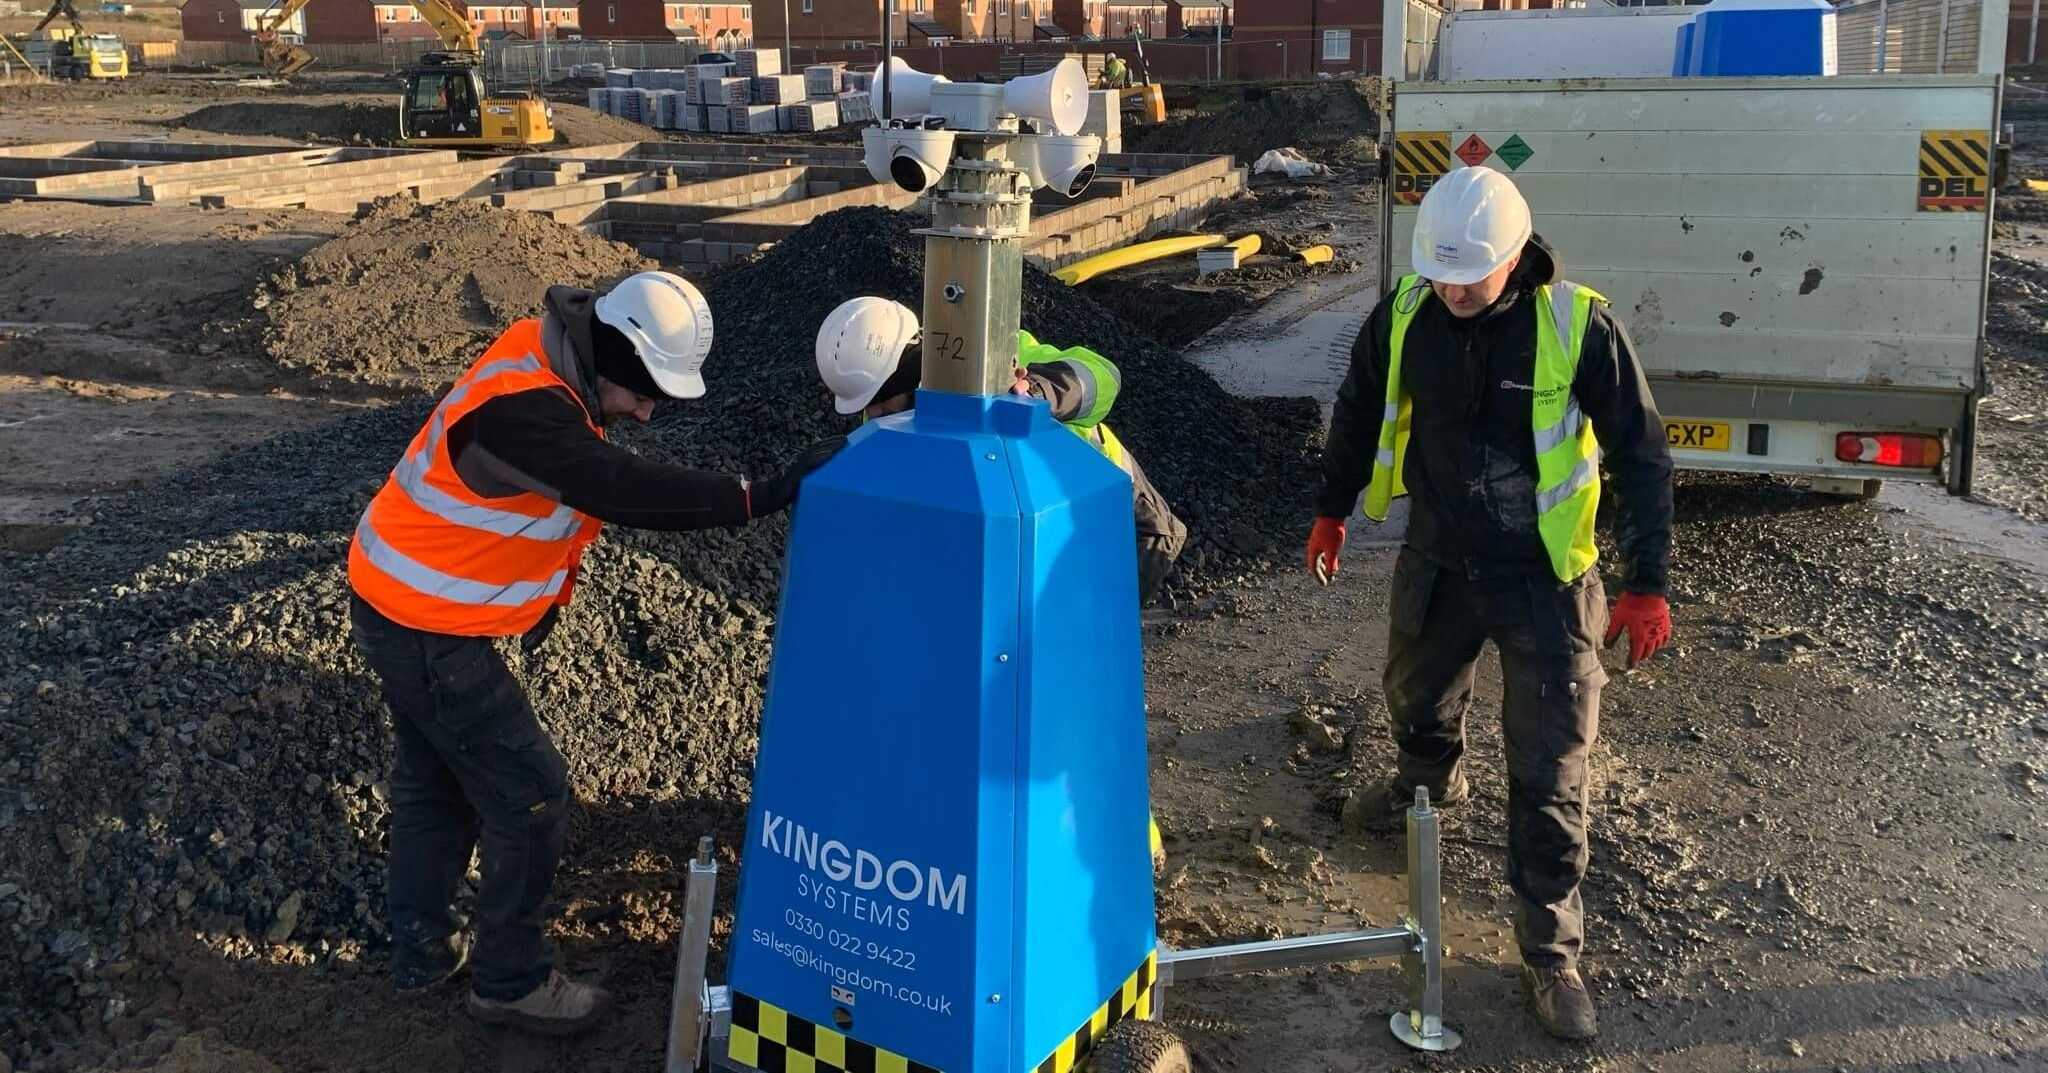 Kingdom Systems installing CCTV on construction site